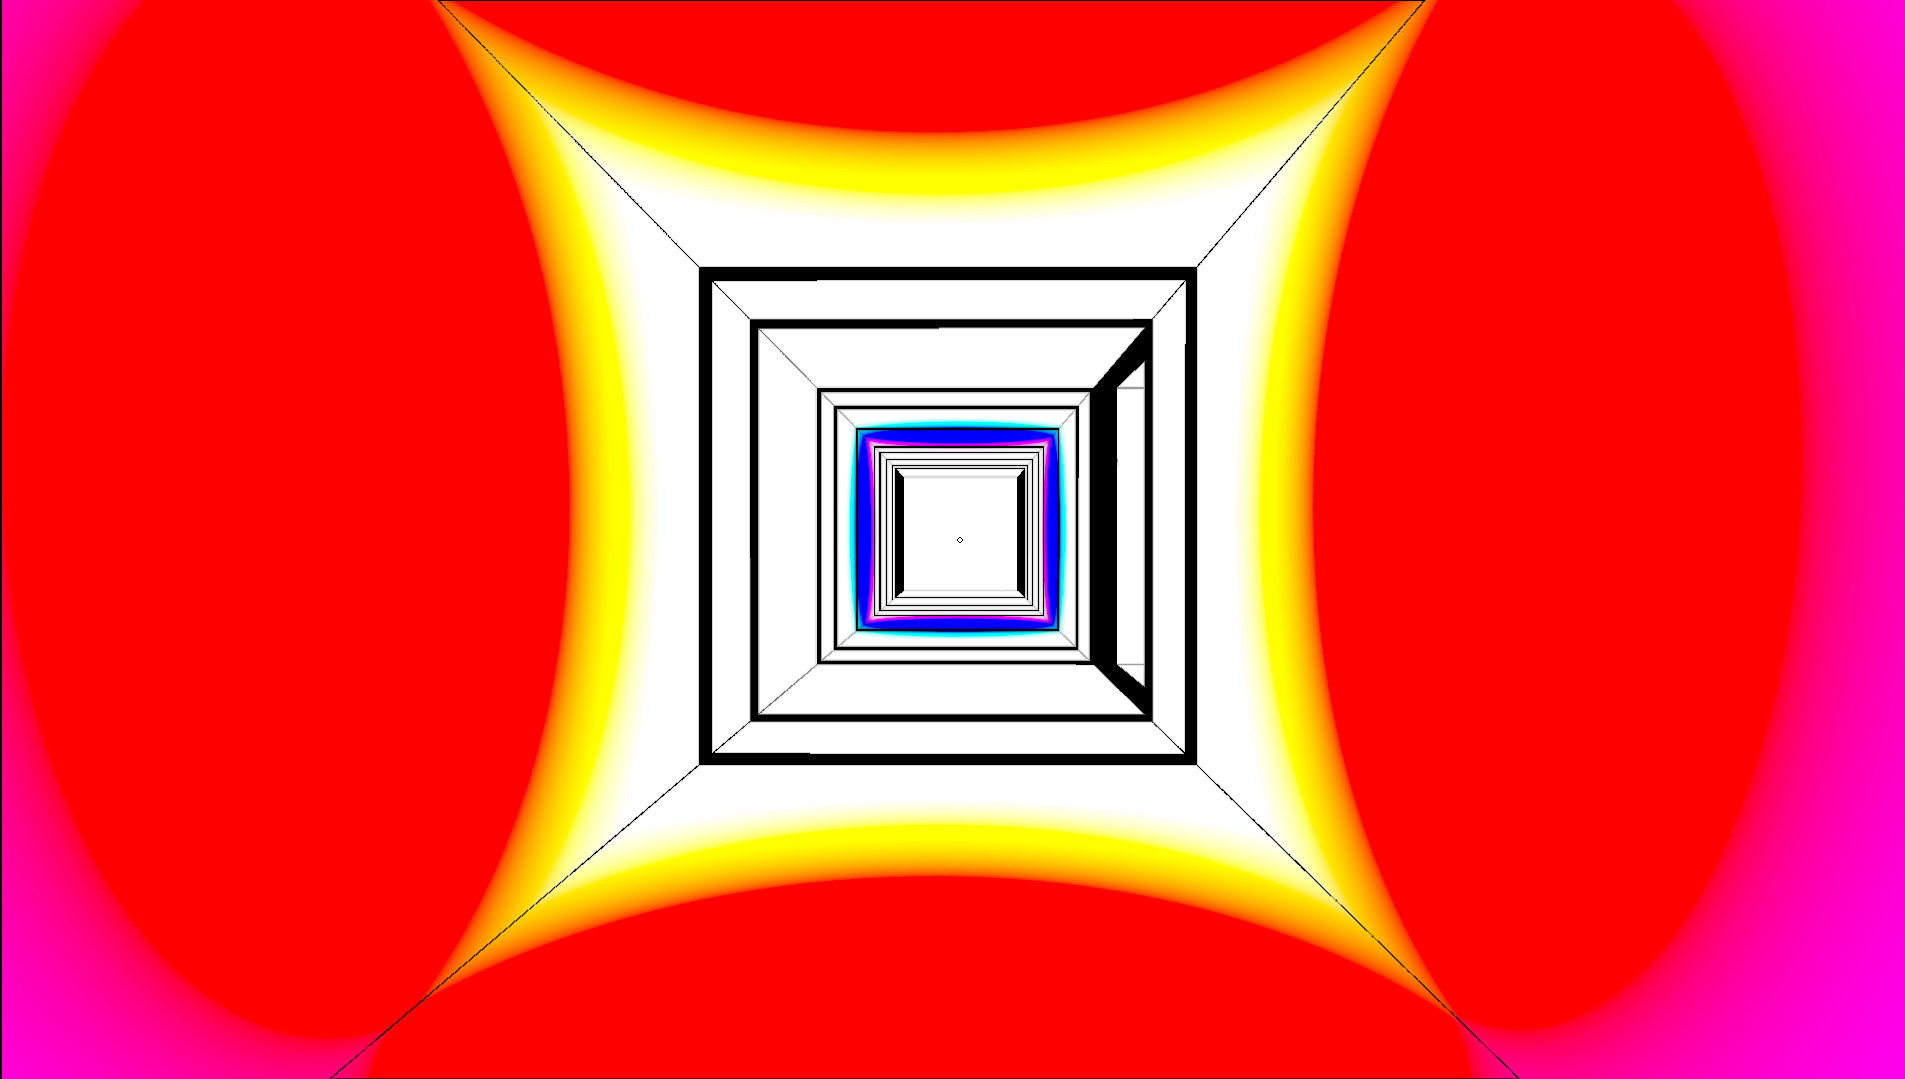 A square hallway with alternating pink, red, yellow, white, black, and blue layers